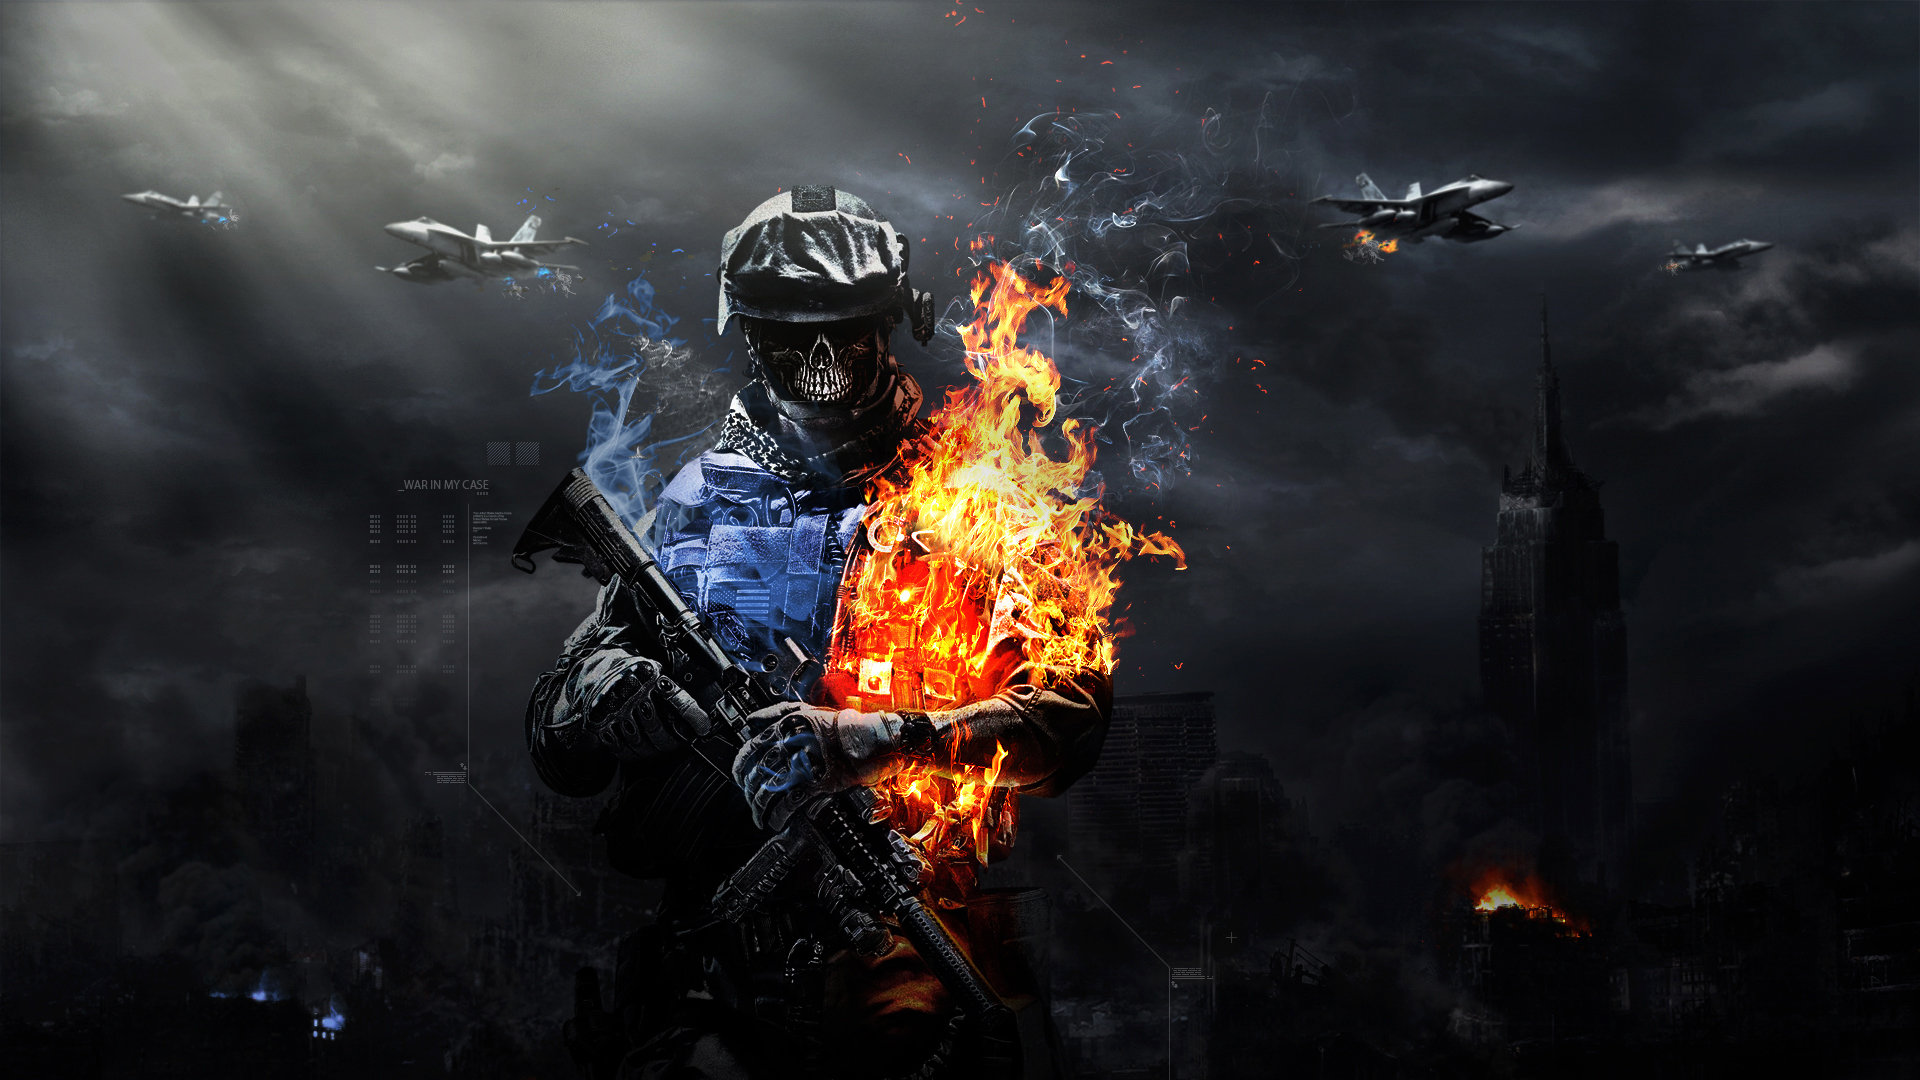 Cool Battlefield 4 Fire Armor In Black Background: Battlefield 3 Full HD Tapeta And Tło